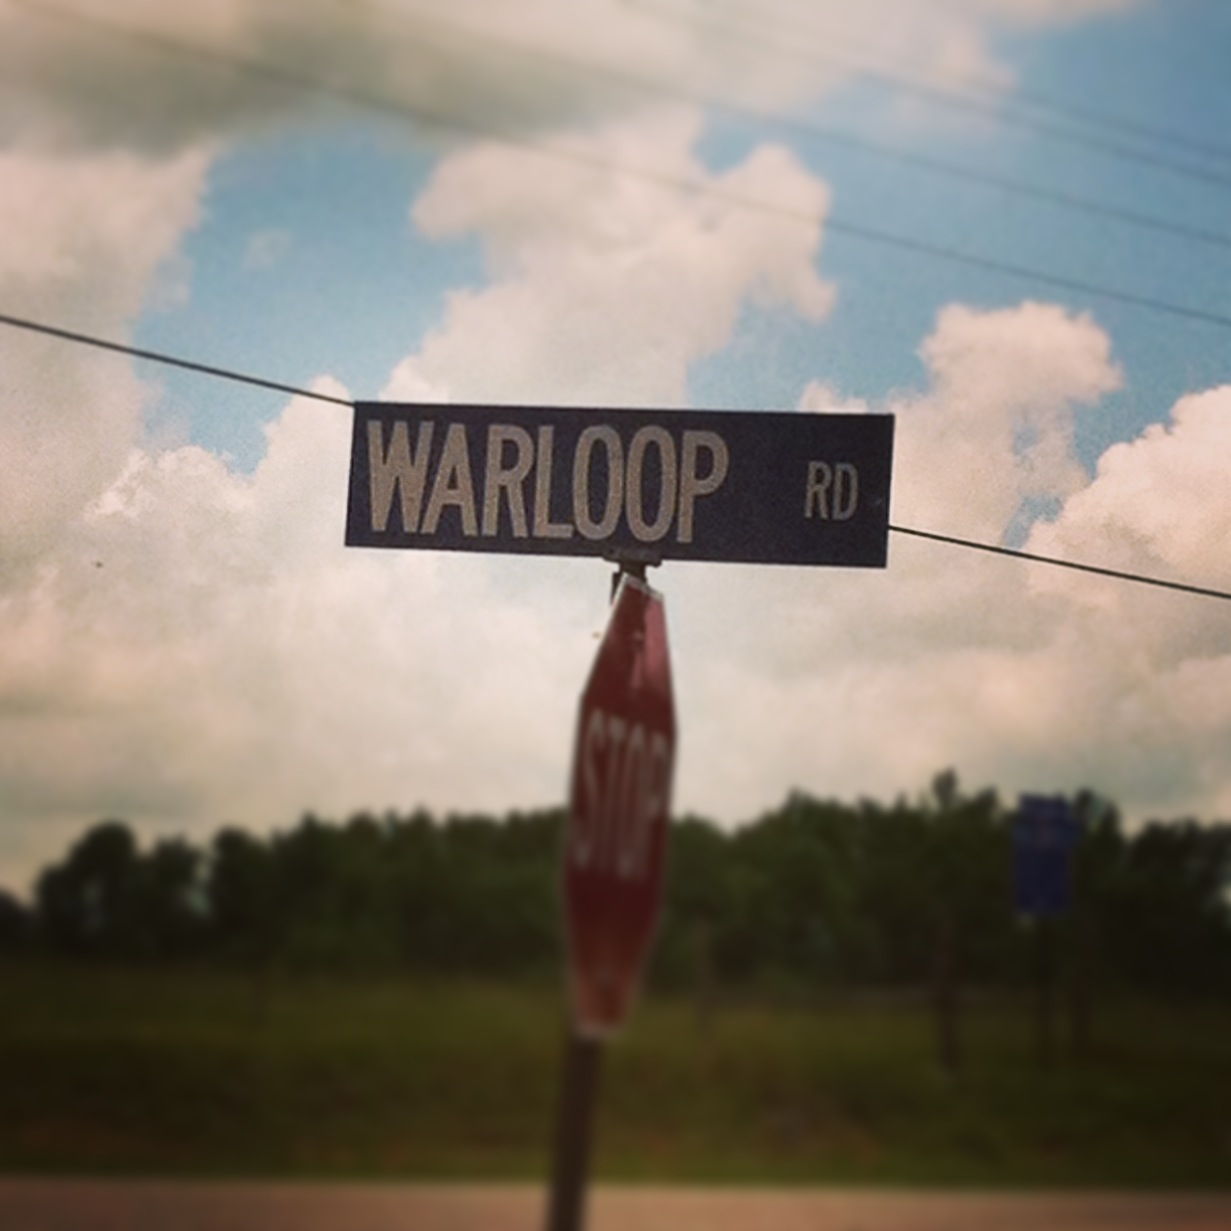 Warloop Rd.